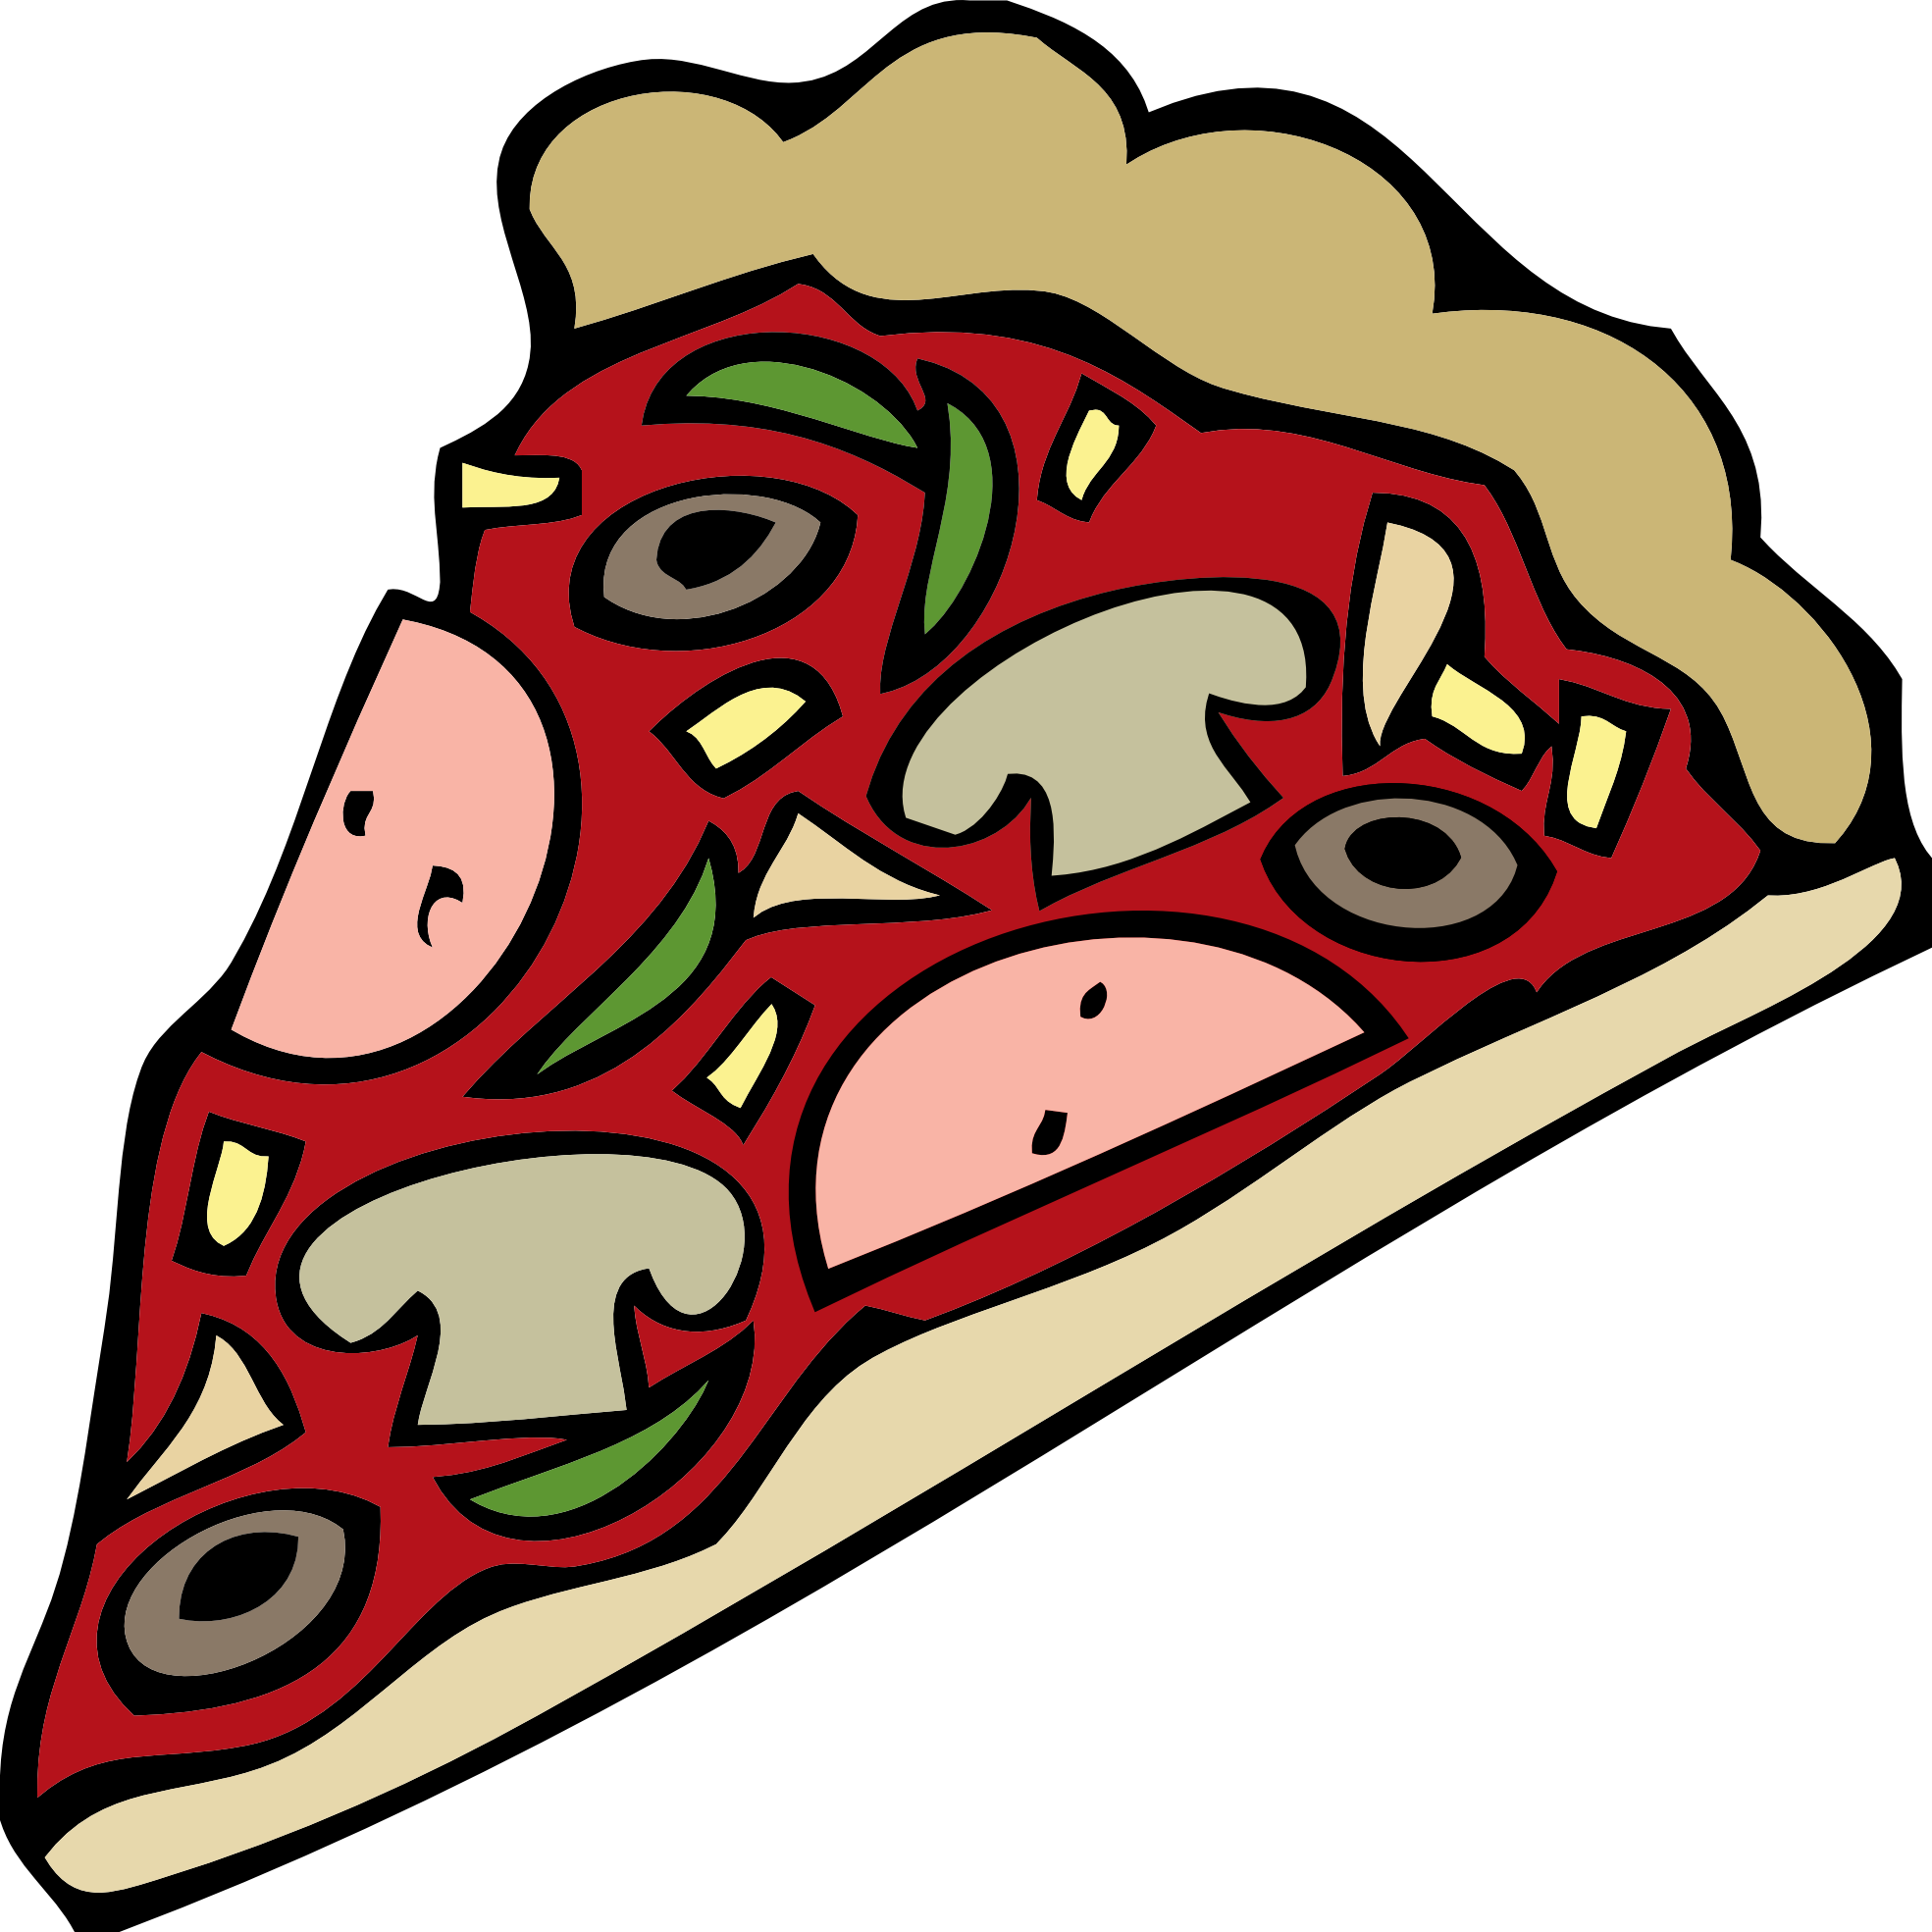 Clip art free download. Pizza clipart big pizza